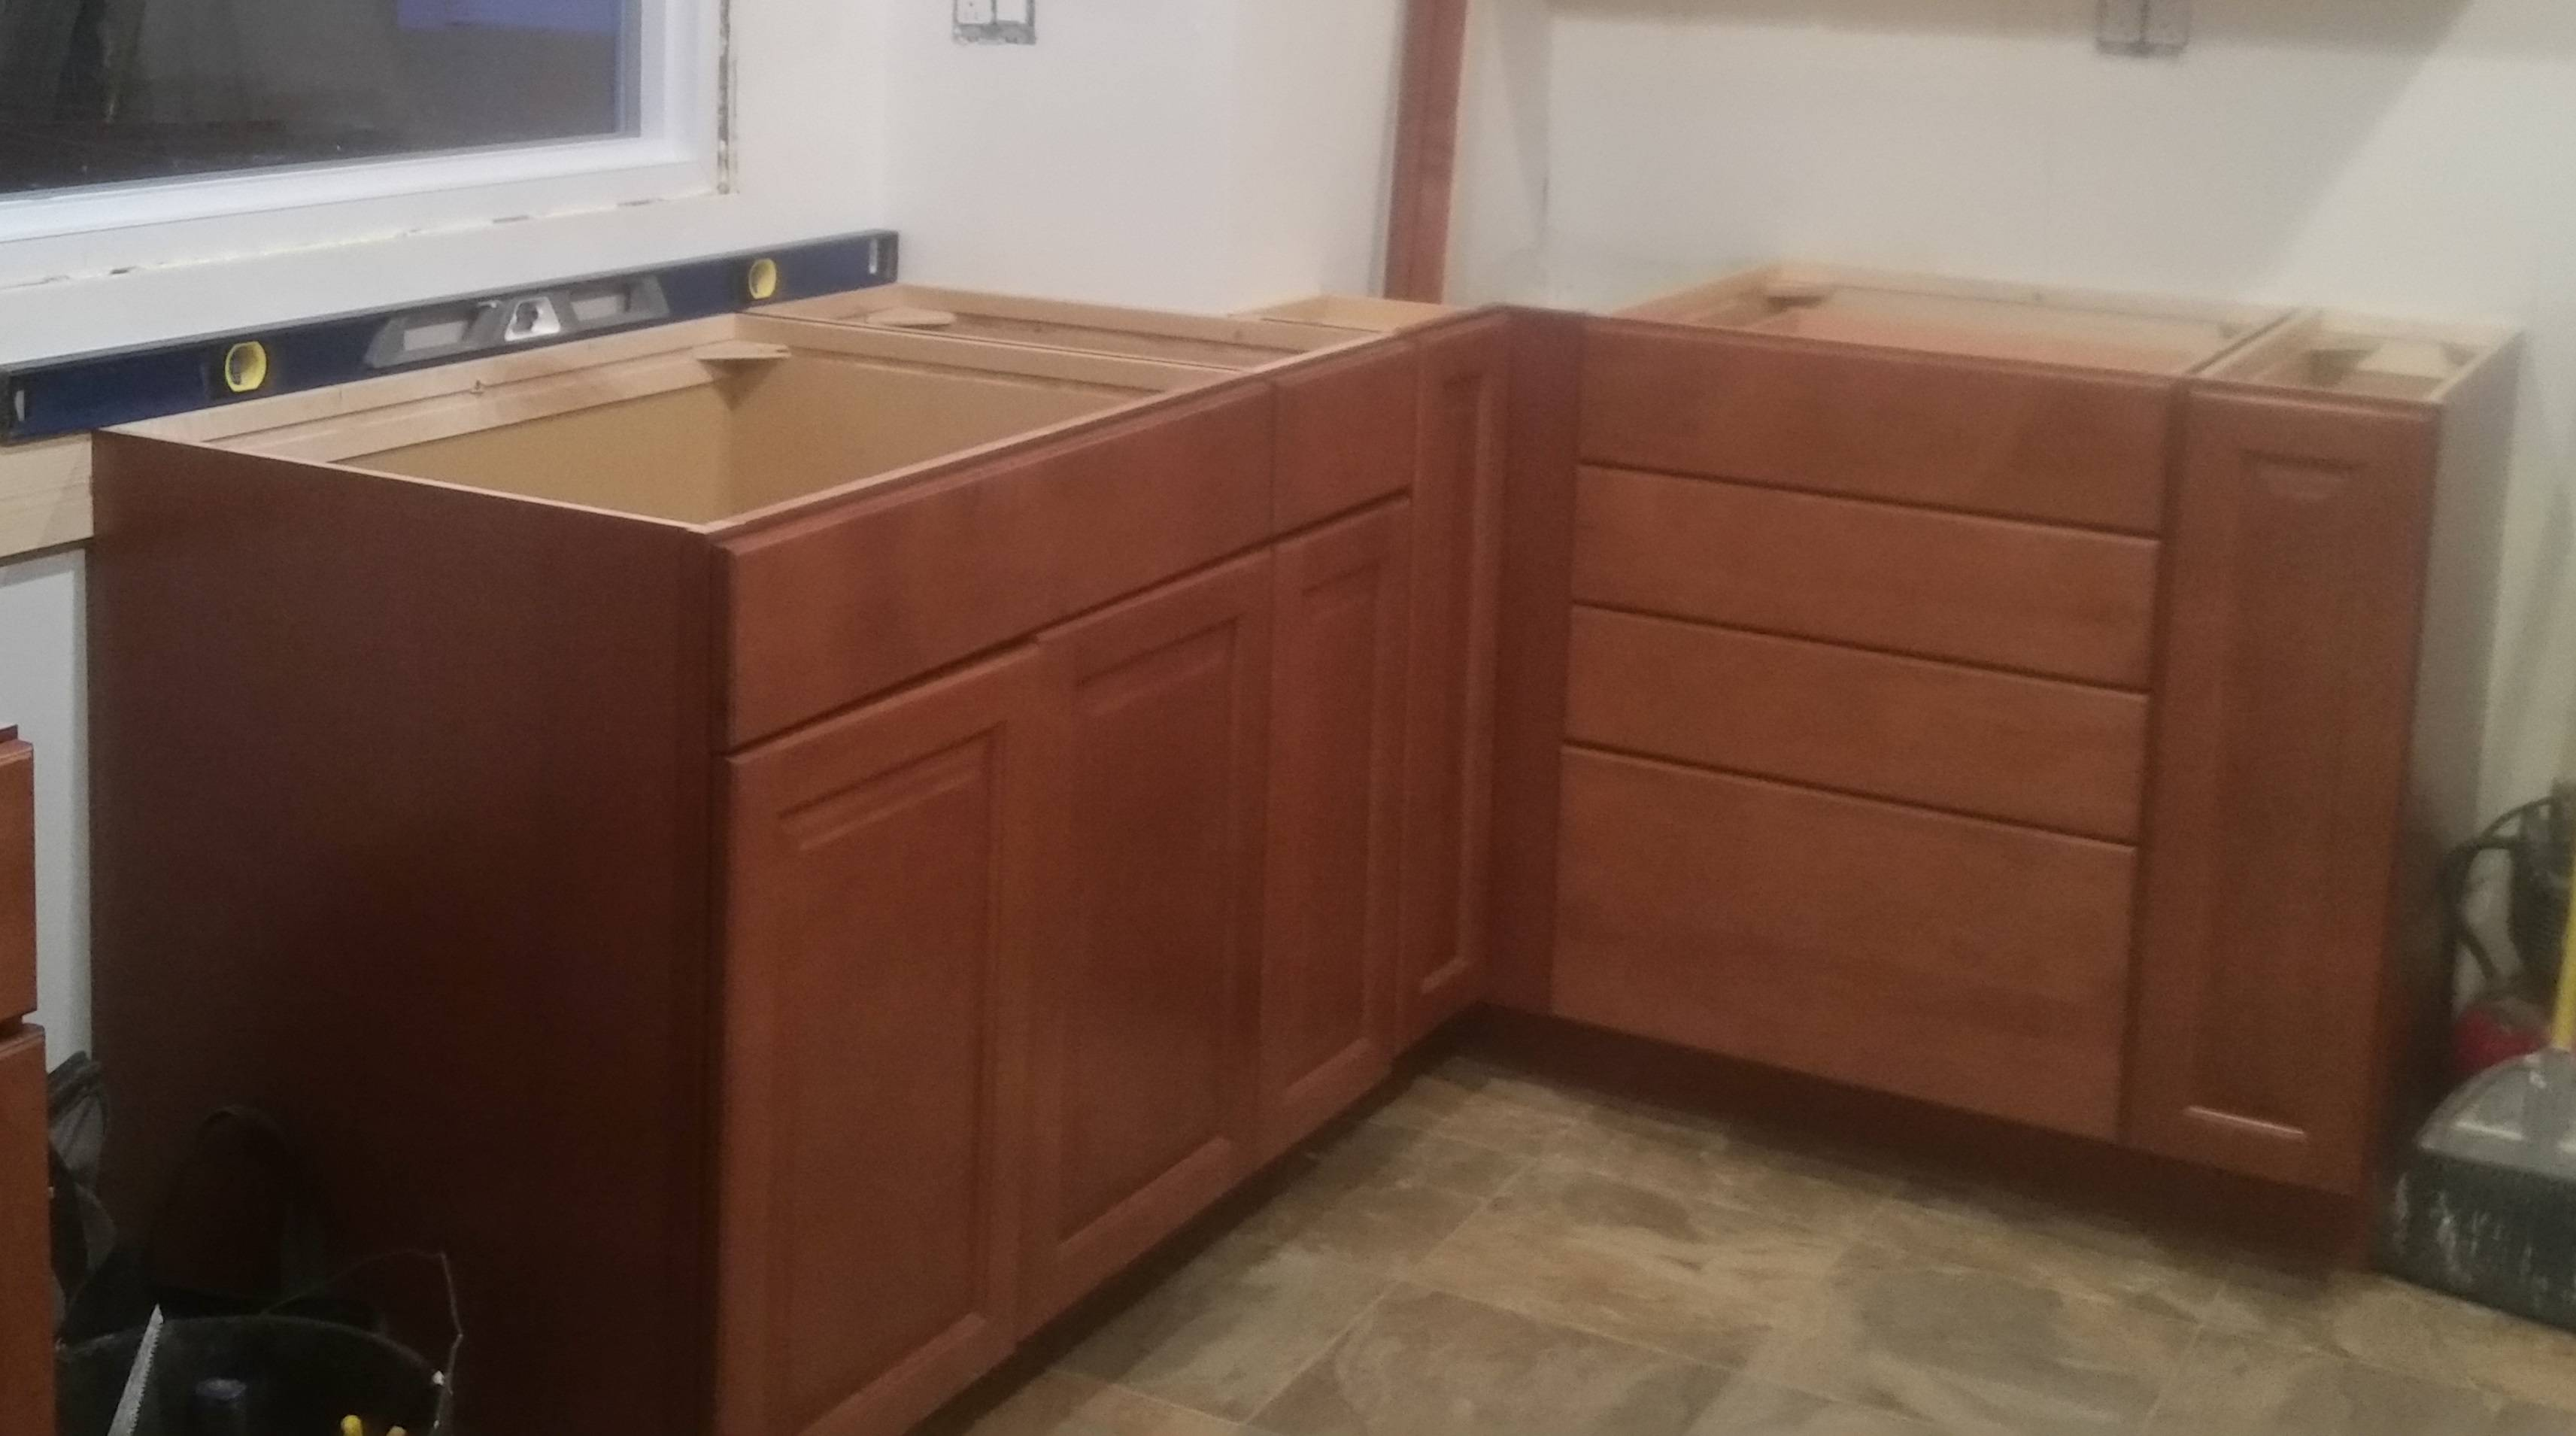 how can i protect ultra thin paint on new kitchen cabinets new kitchen cabinets enter image description here